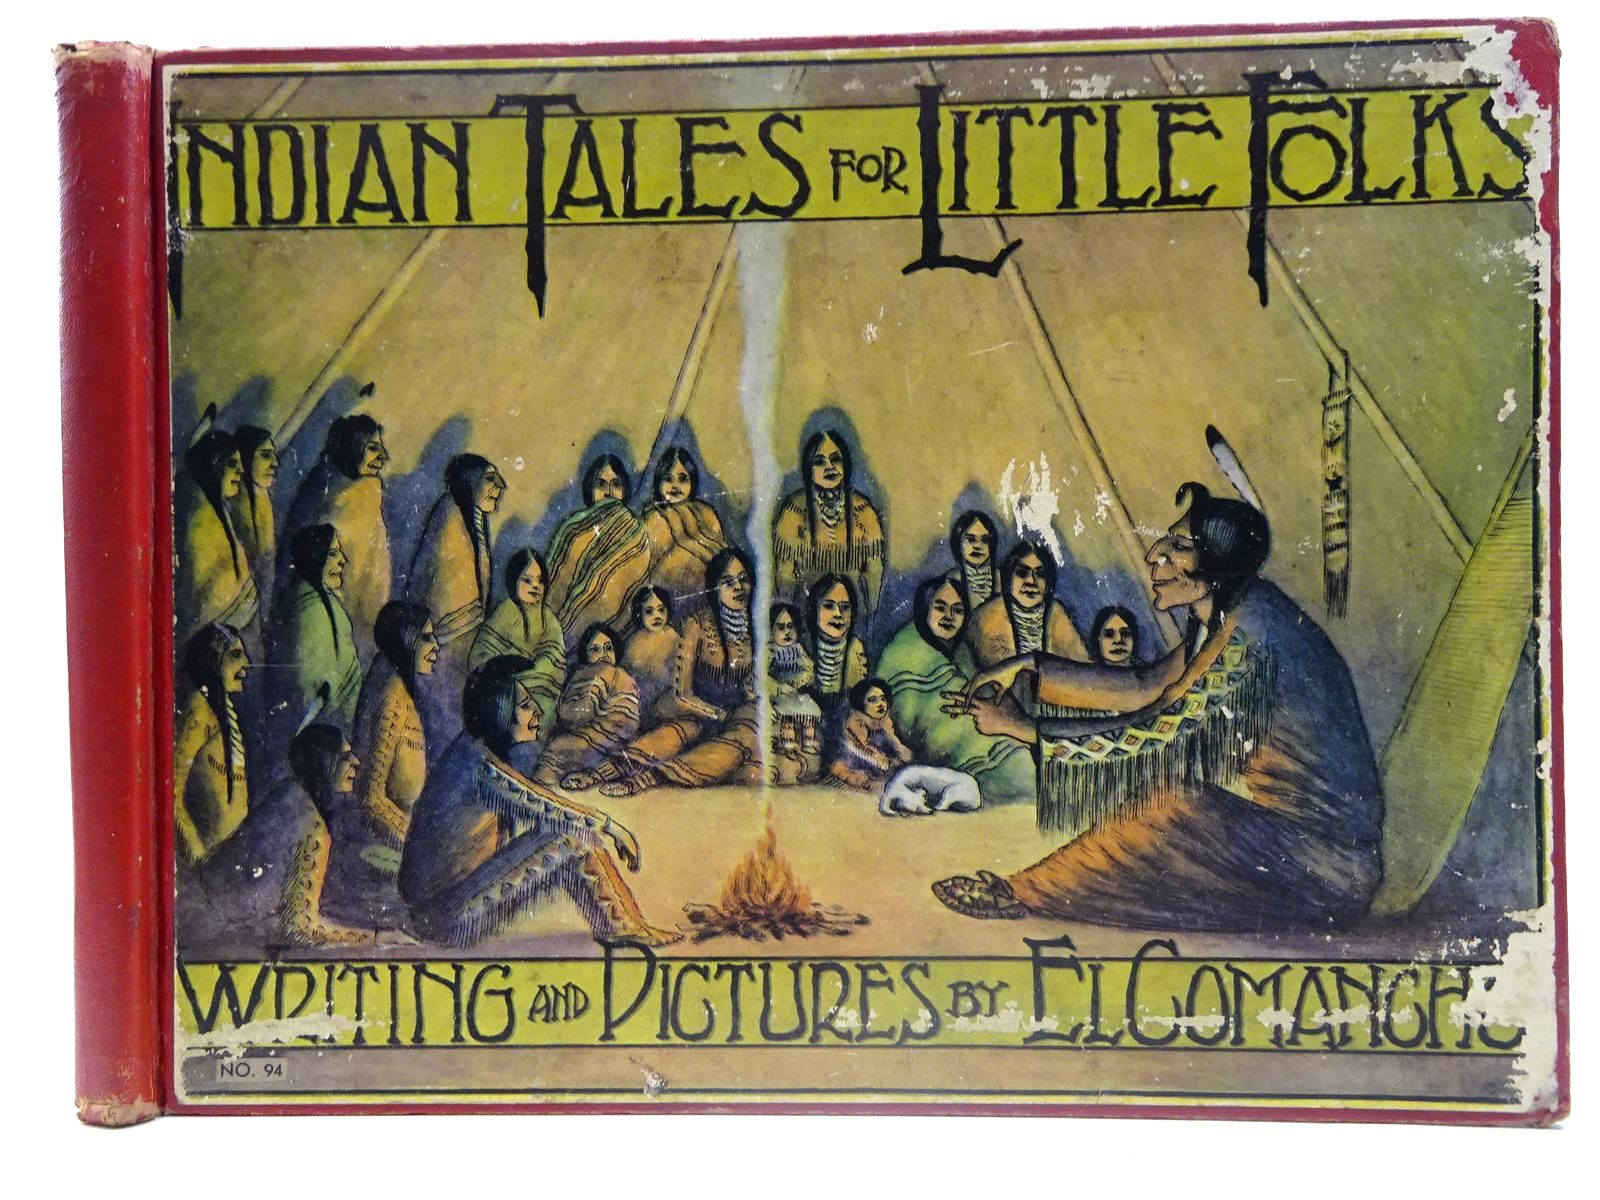 Photo of INDIAN TALES FOR LITTLE FOLKS written by Phillips, W.S.<br />Comancho, El illustrated by Phillips, W.S. published by The Platt And Munk Co. Inc. (STOCK CODE: 2127700)  for sale by Stella & Rose's Books